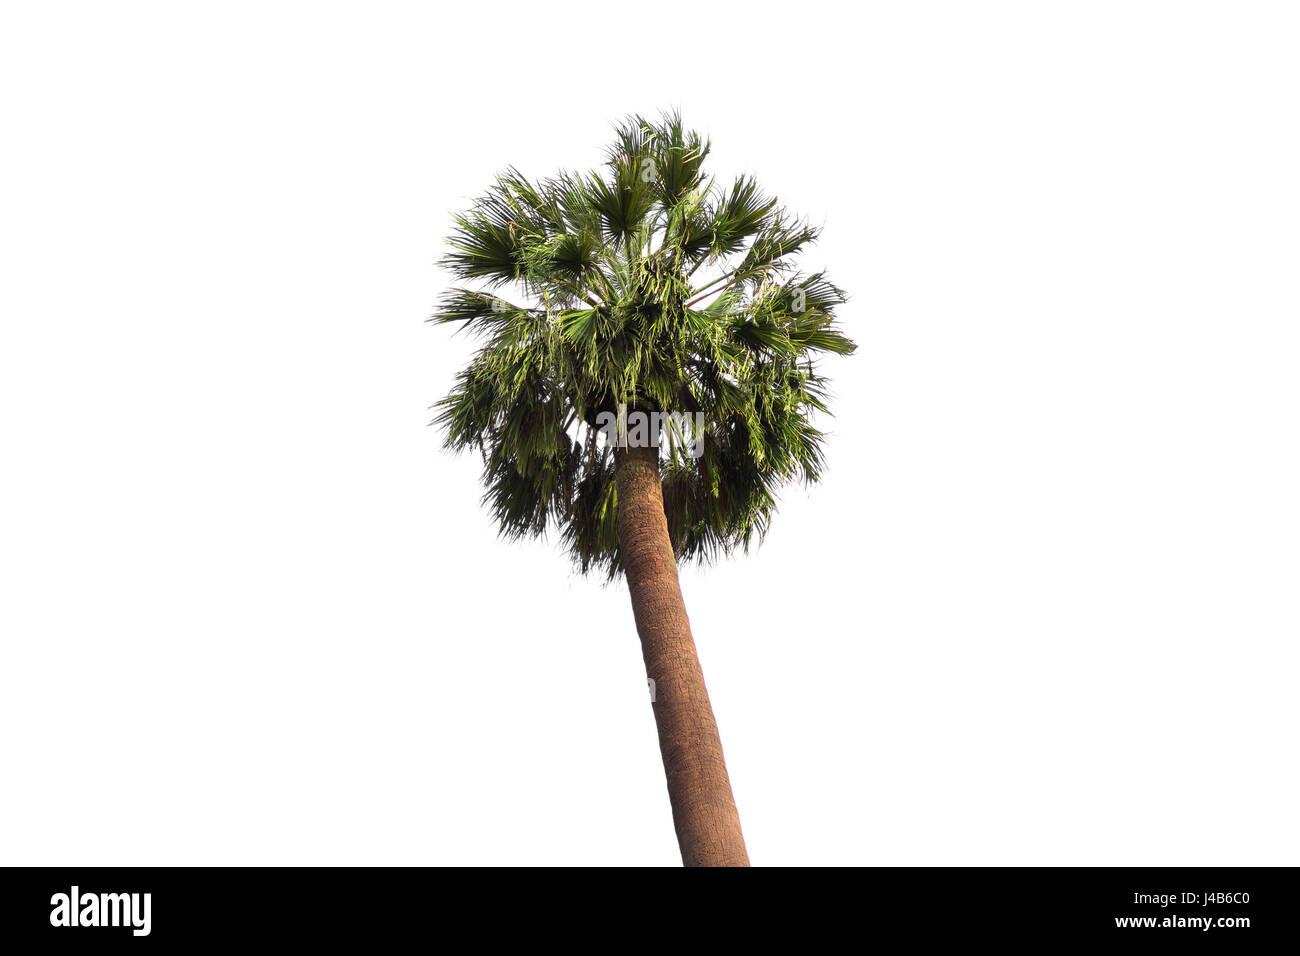 Fan palm tree on the white background - Stock Image